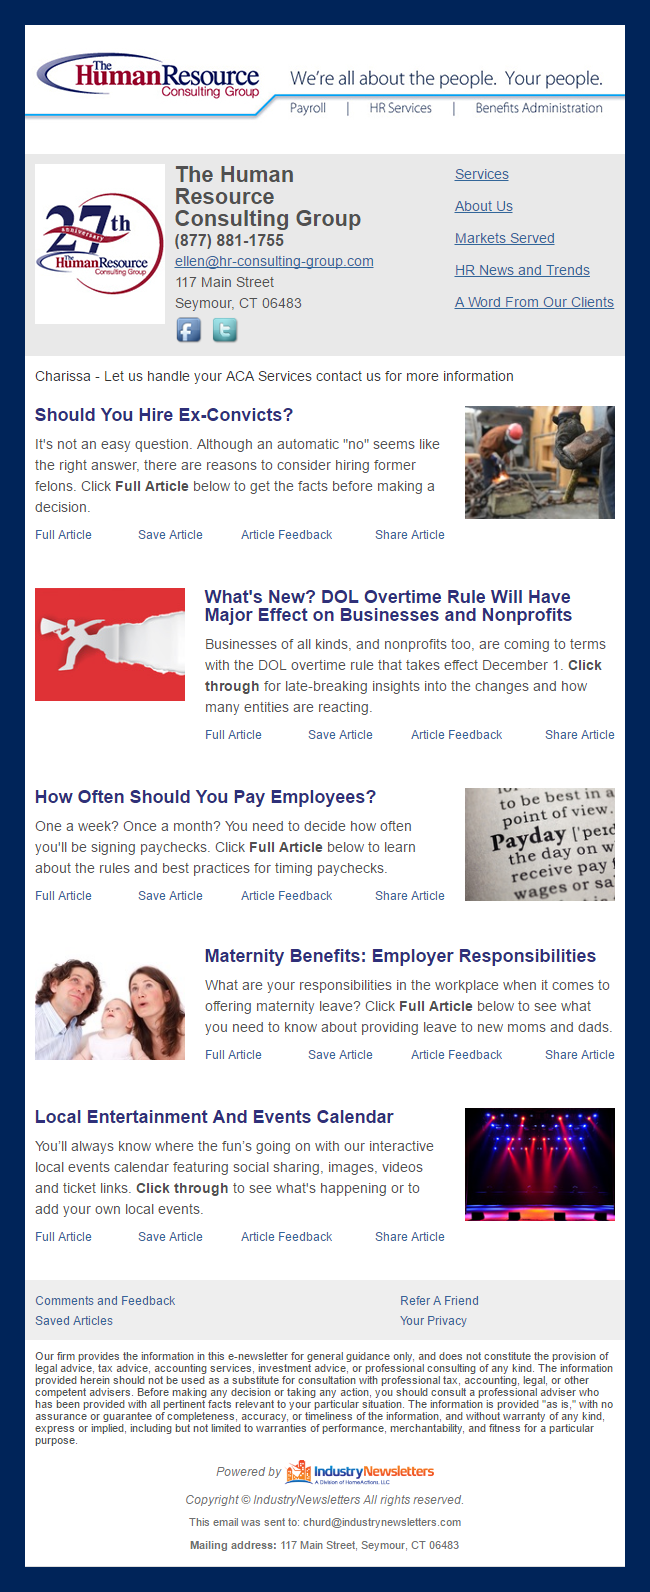 The Human Resource Consulting Group - IndustryNewsletters Sample Email Newsletter